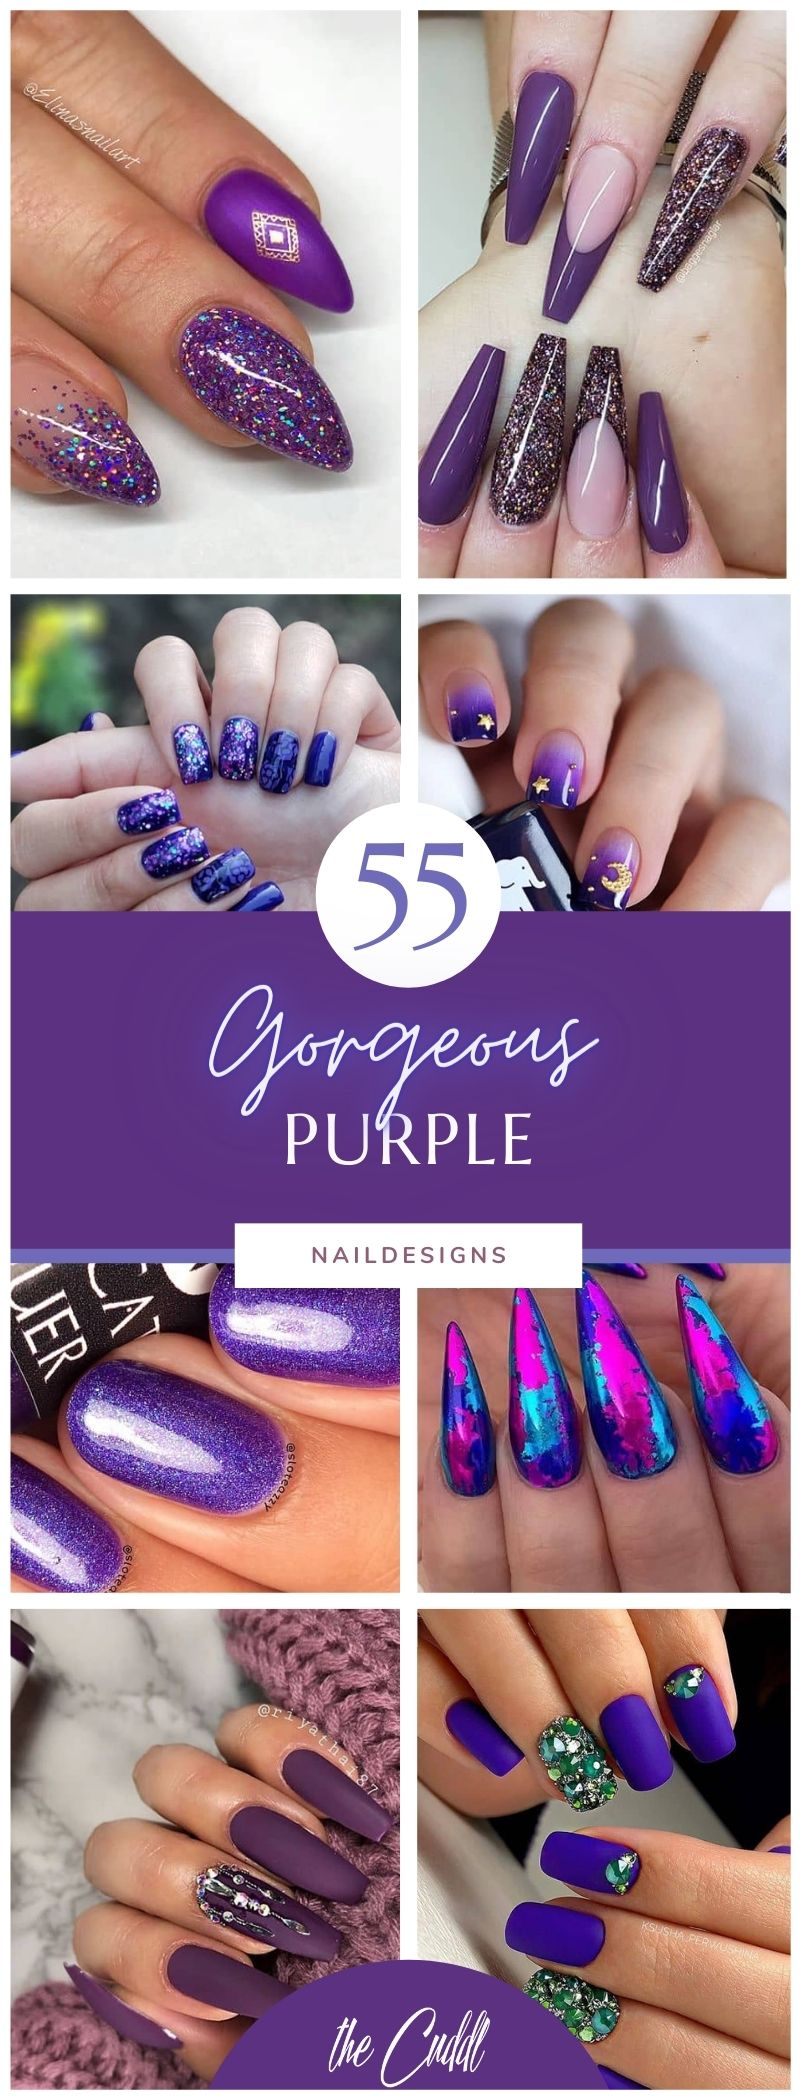 50 Perfect Purple Nail Designs for Practically any Occasion